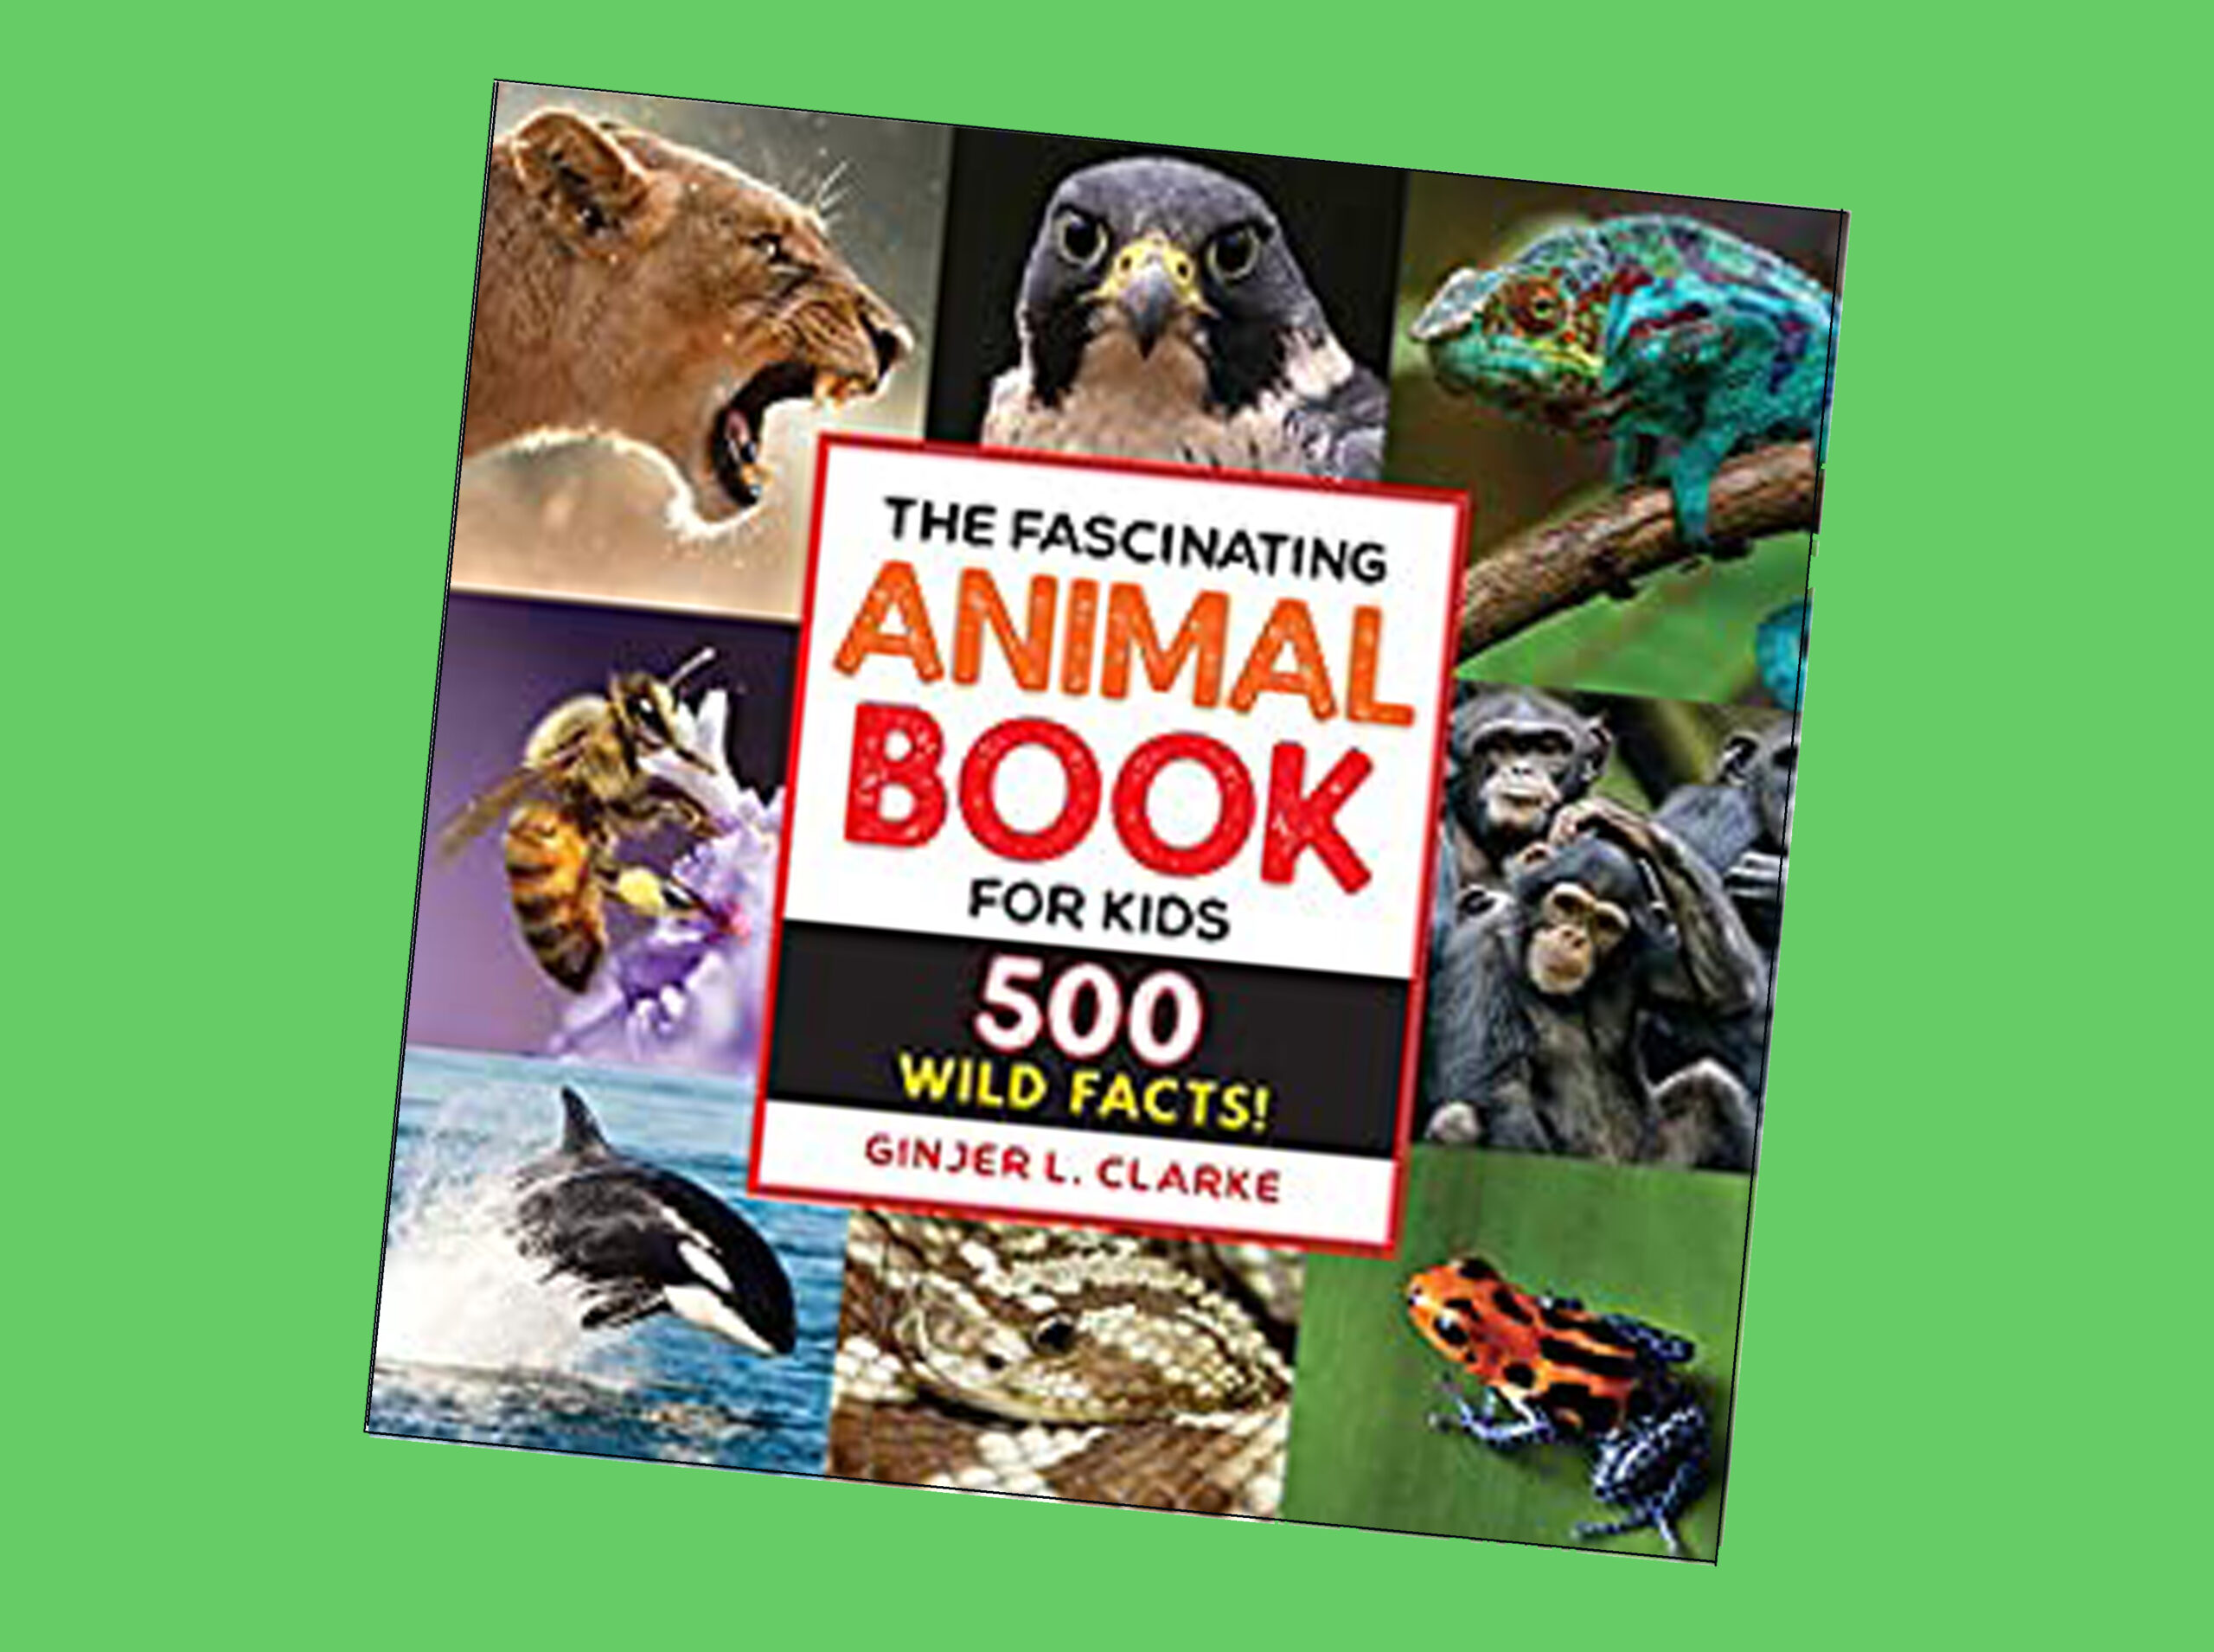 Fascinating Animal Book for Kids